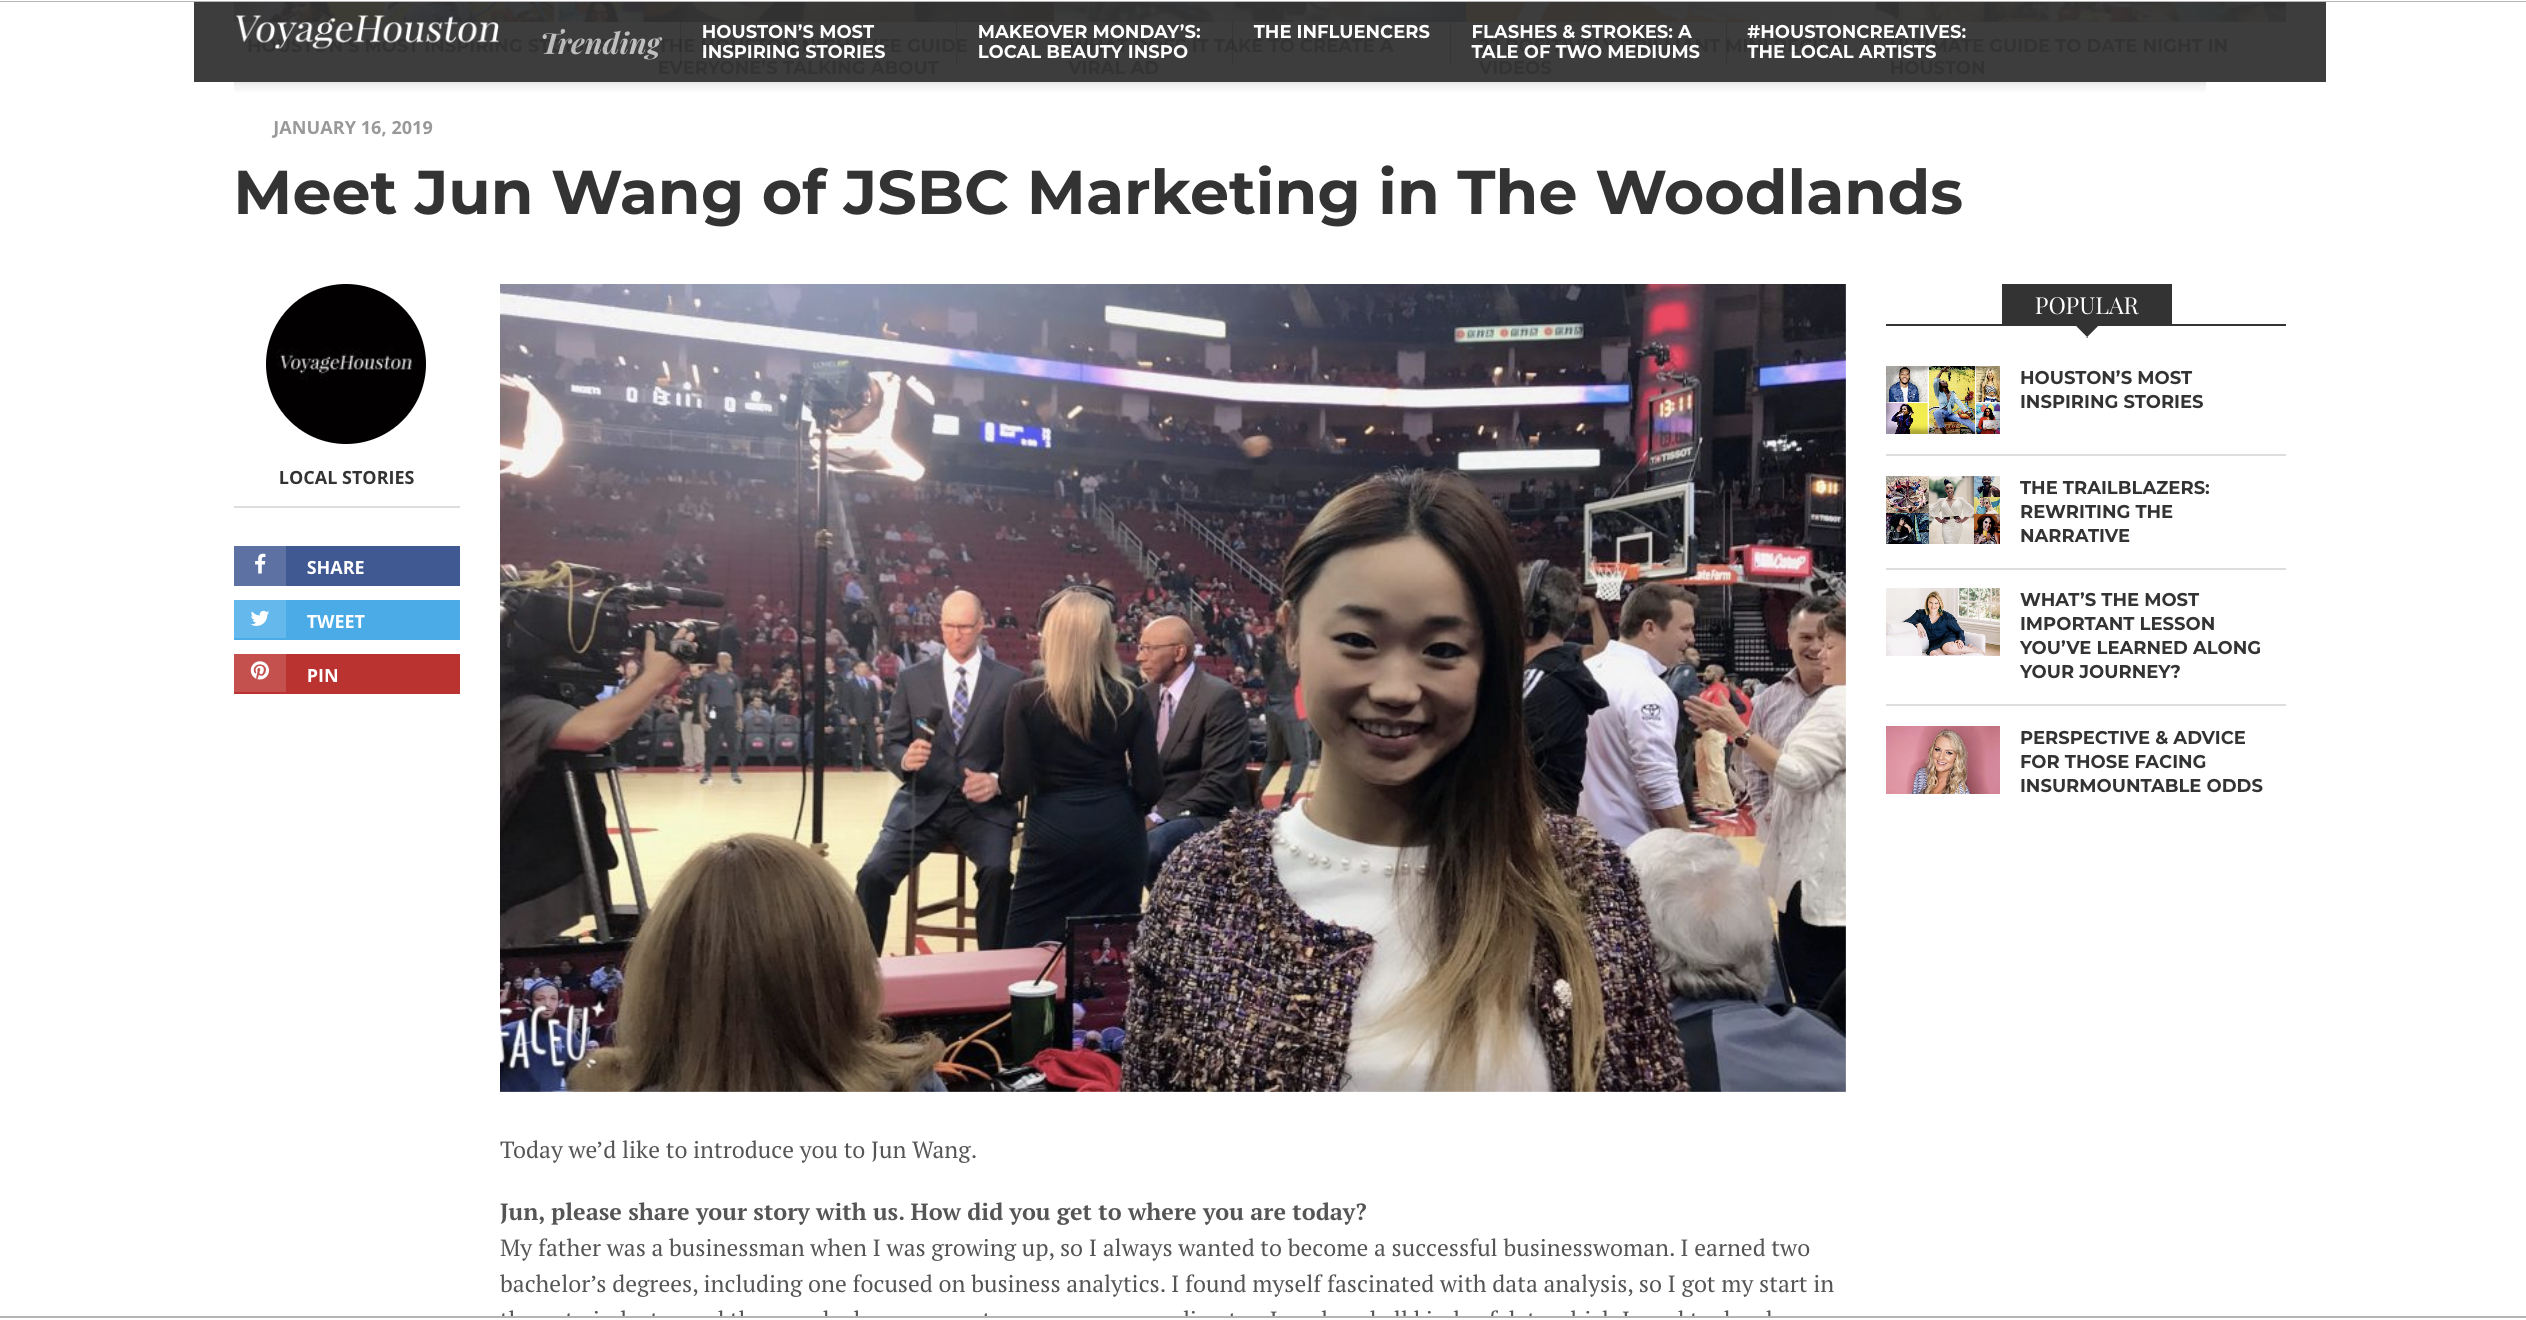 Voyage Houston Interview Jun Wang of JSBC Marketing